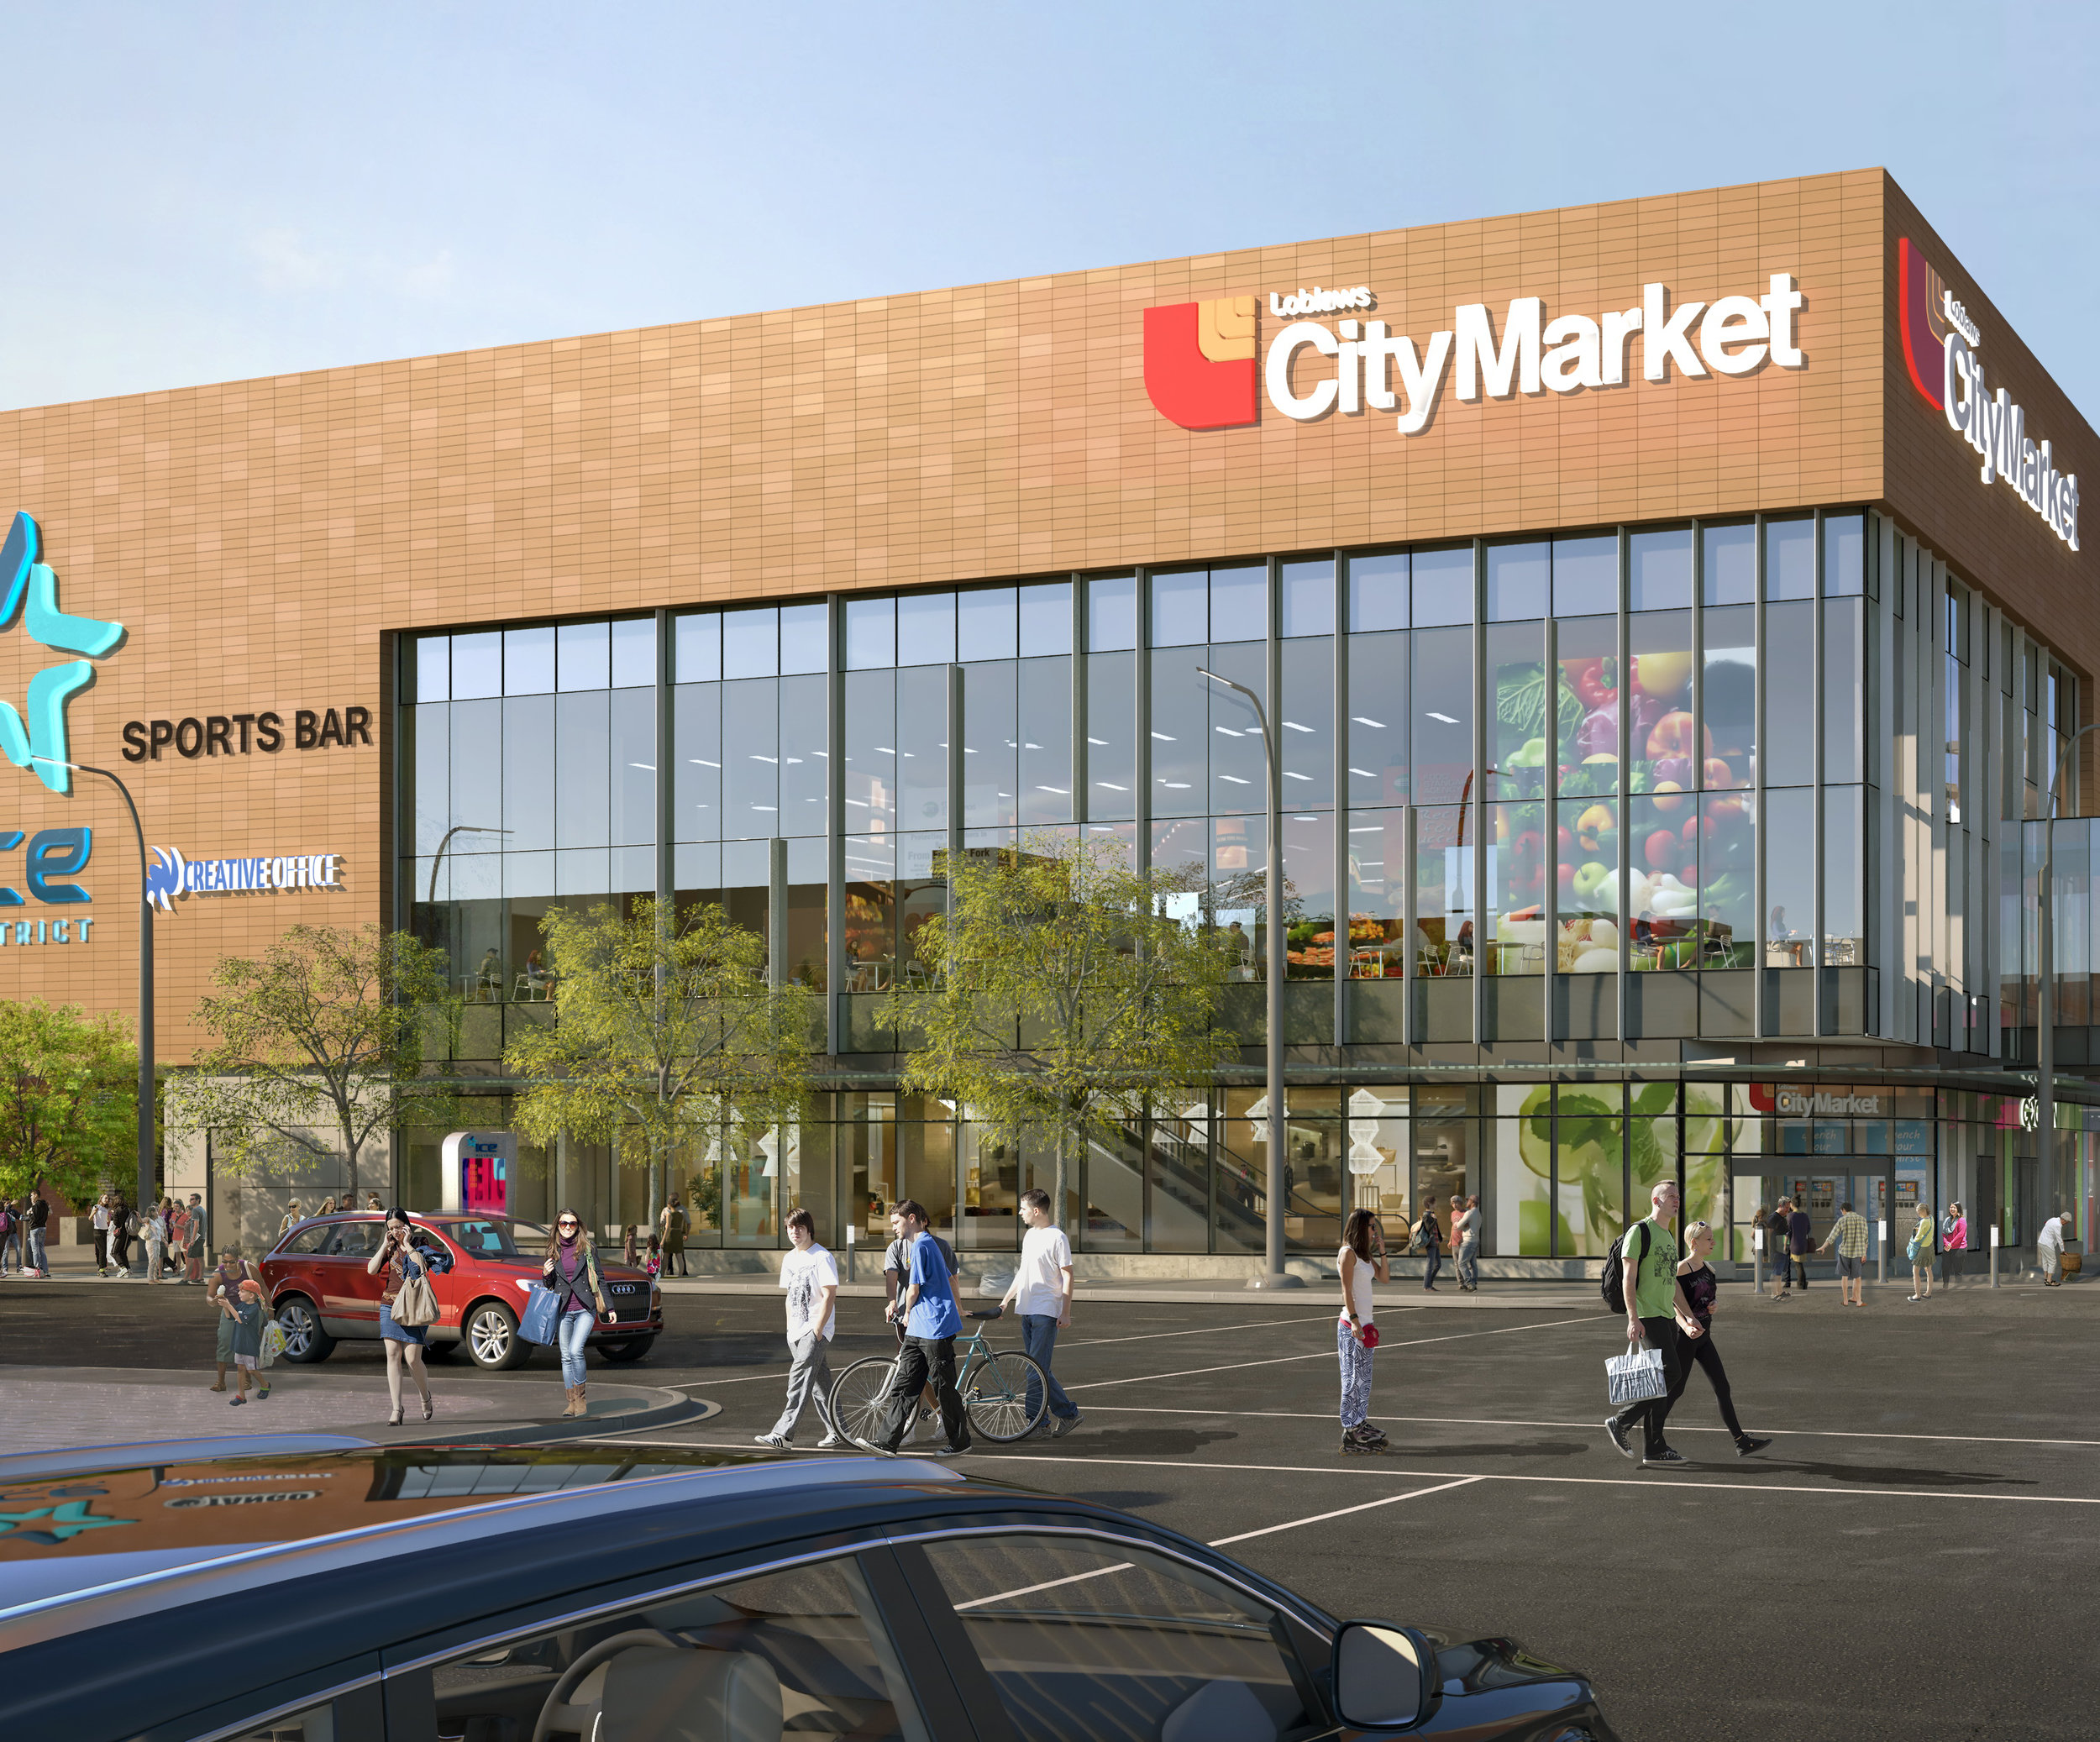 RENDERING: LOBLAWS